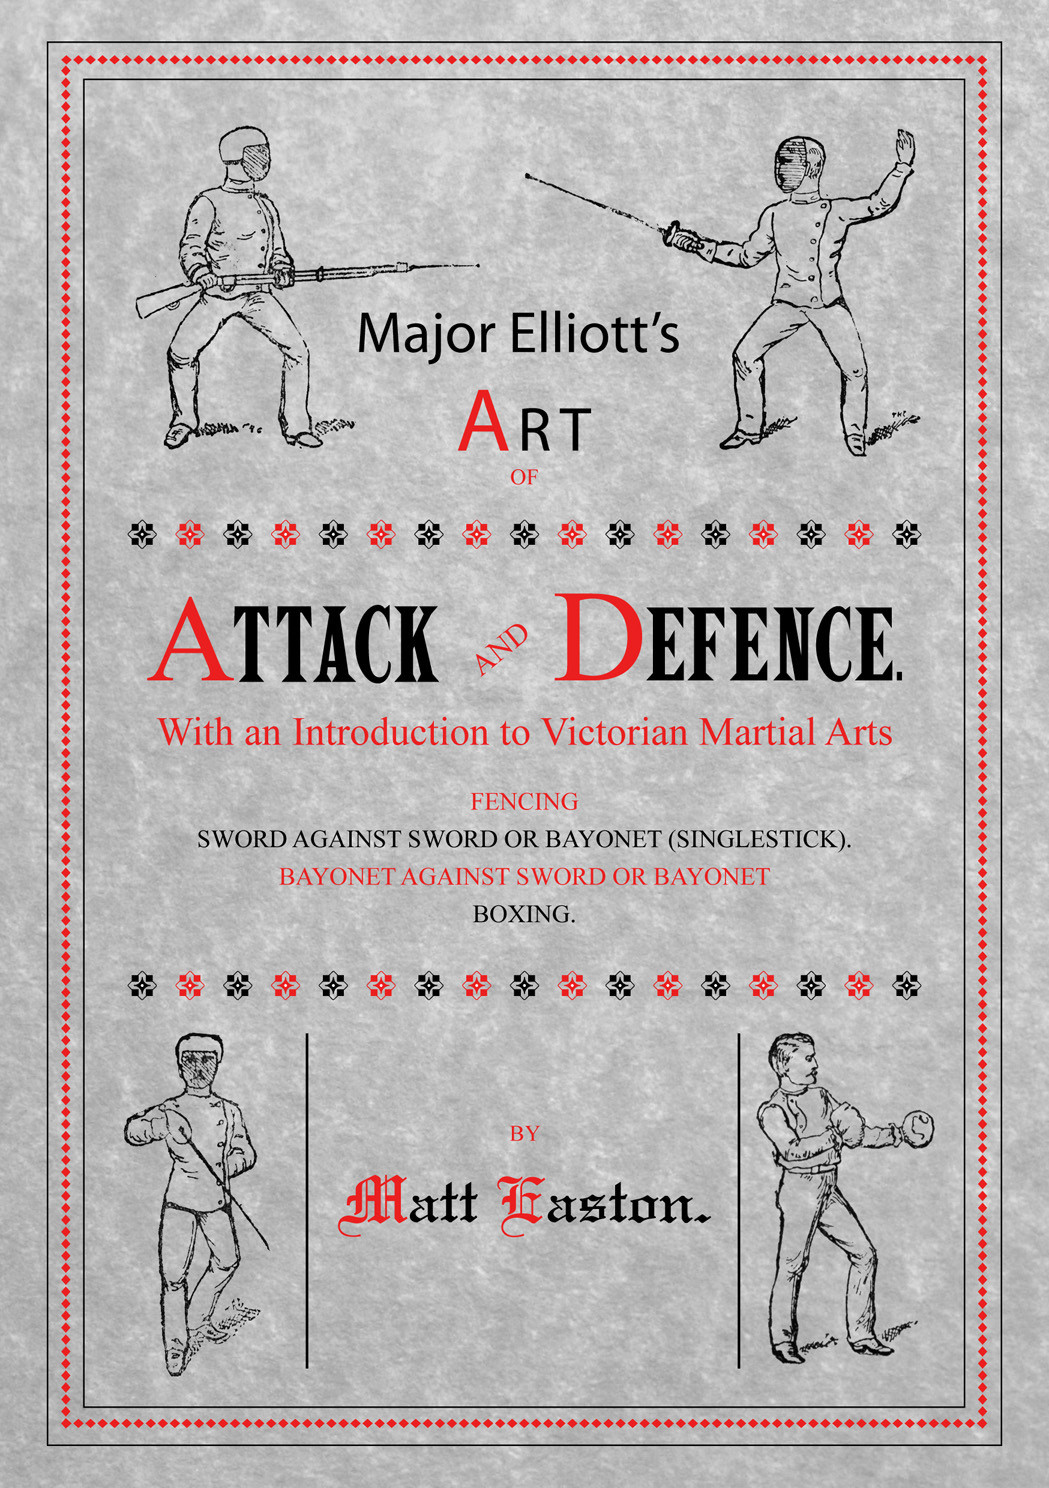 Major Elliot's Art of Attack and Defence